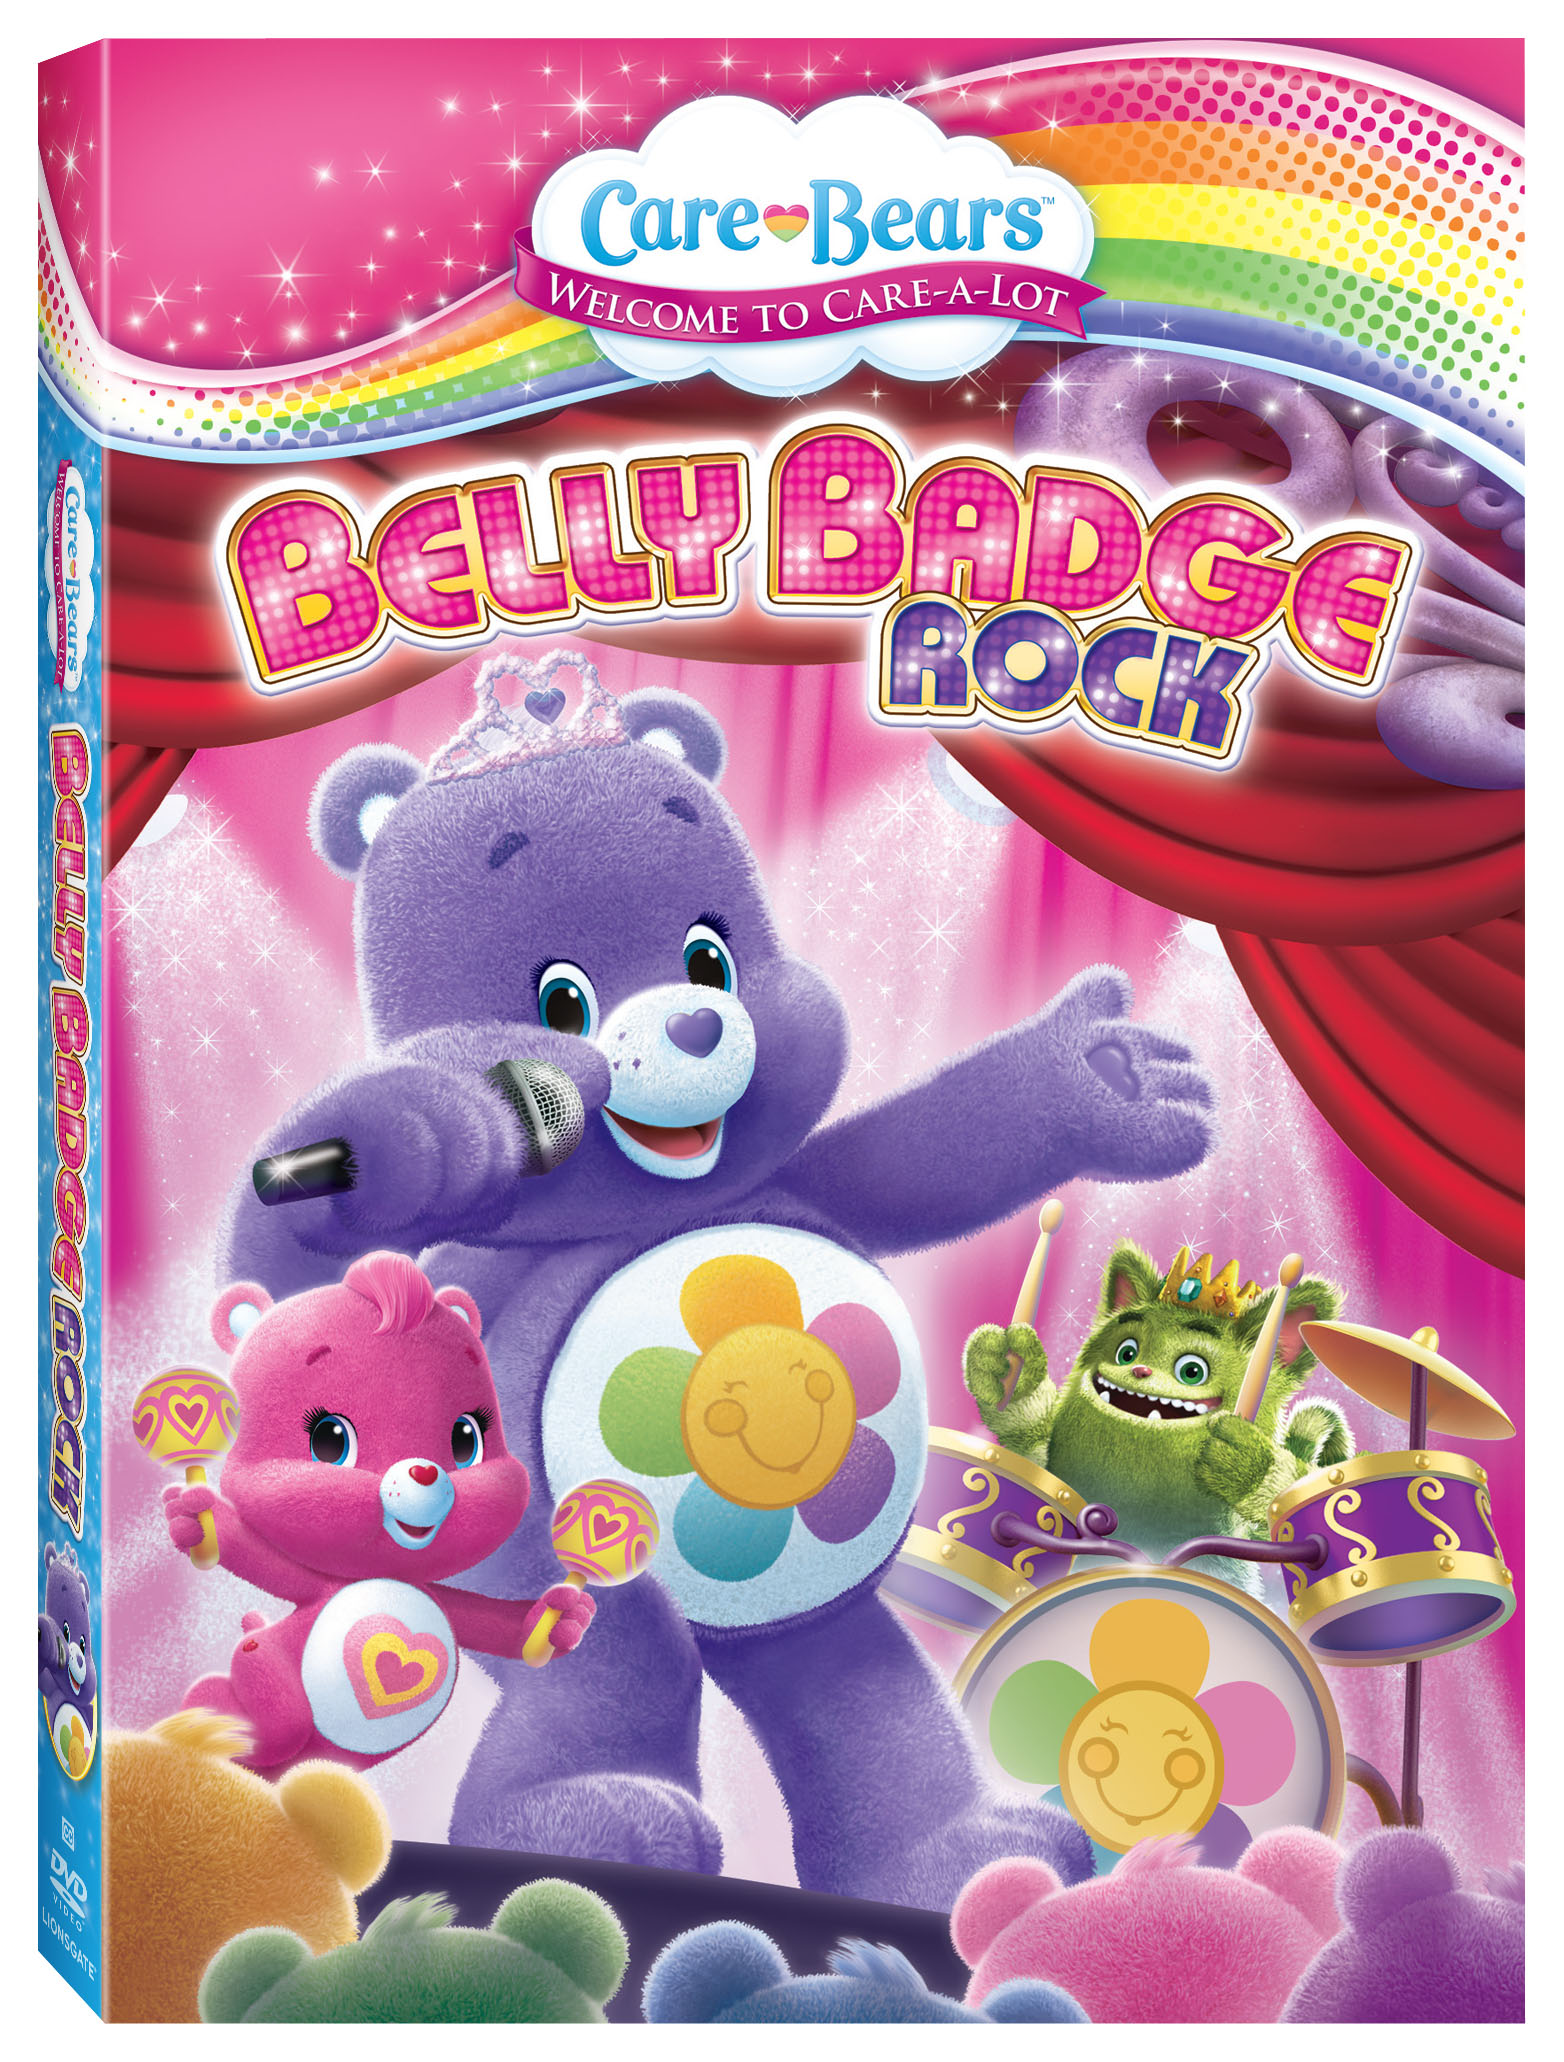 image relating to Care Bear Belly Badges Printable named Treatment Bears: Tummy Badge Rock DVD Giveaway